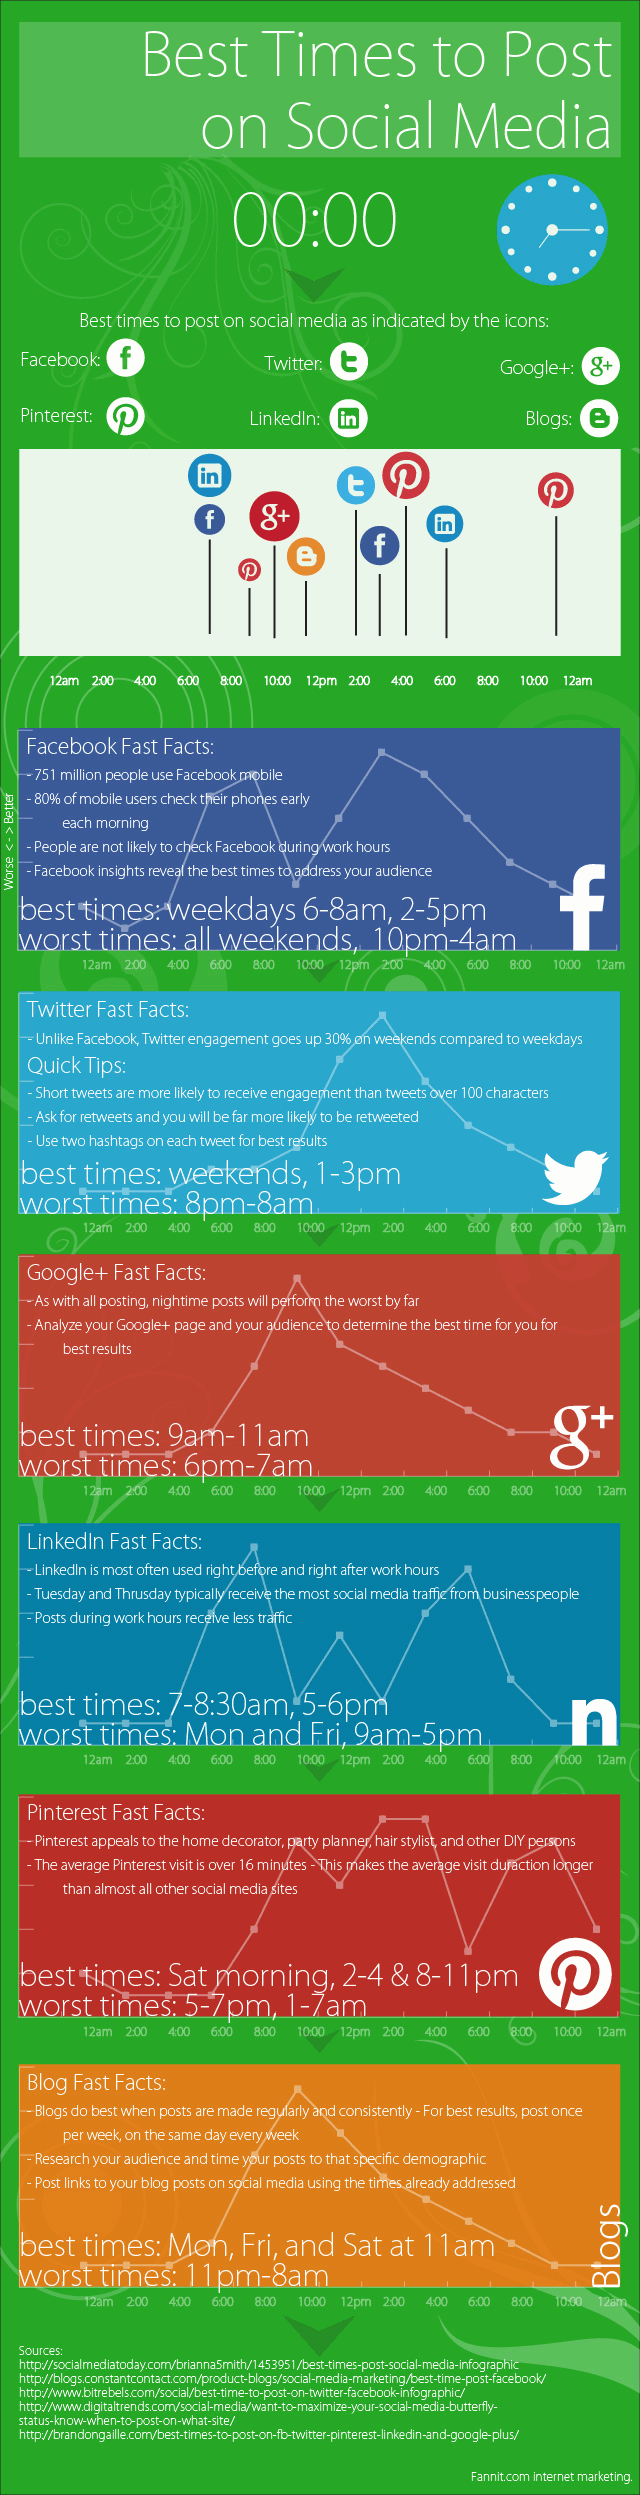 Best time to post on Google+ facebook twitter Linkedin Pinterest